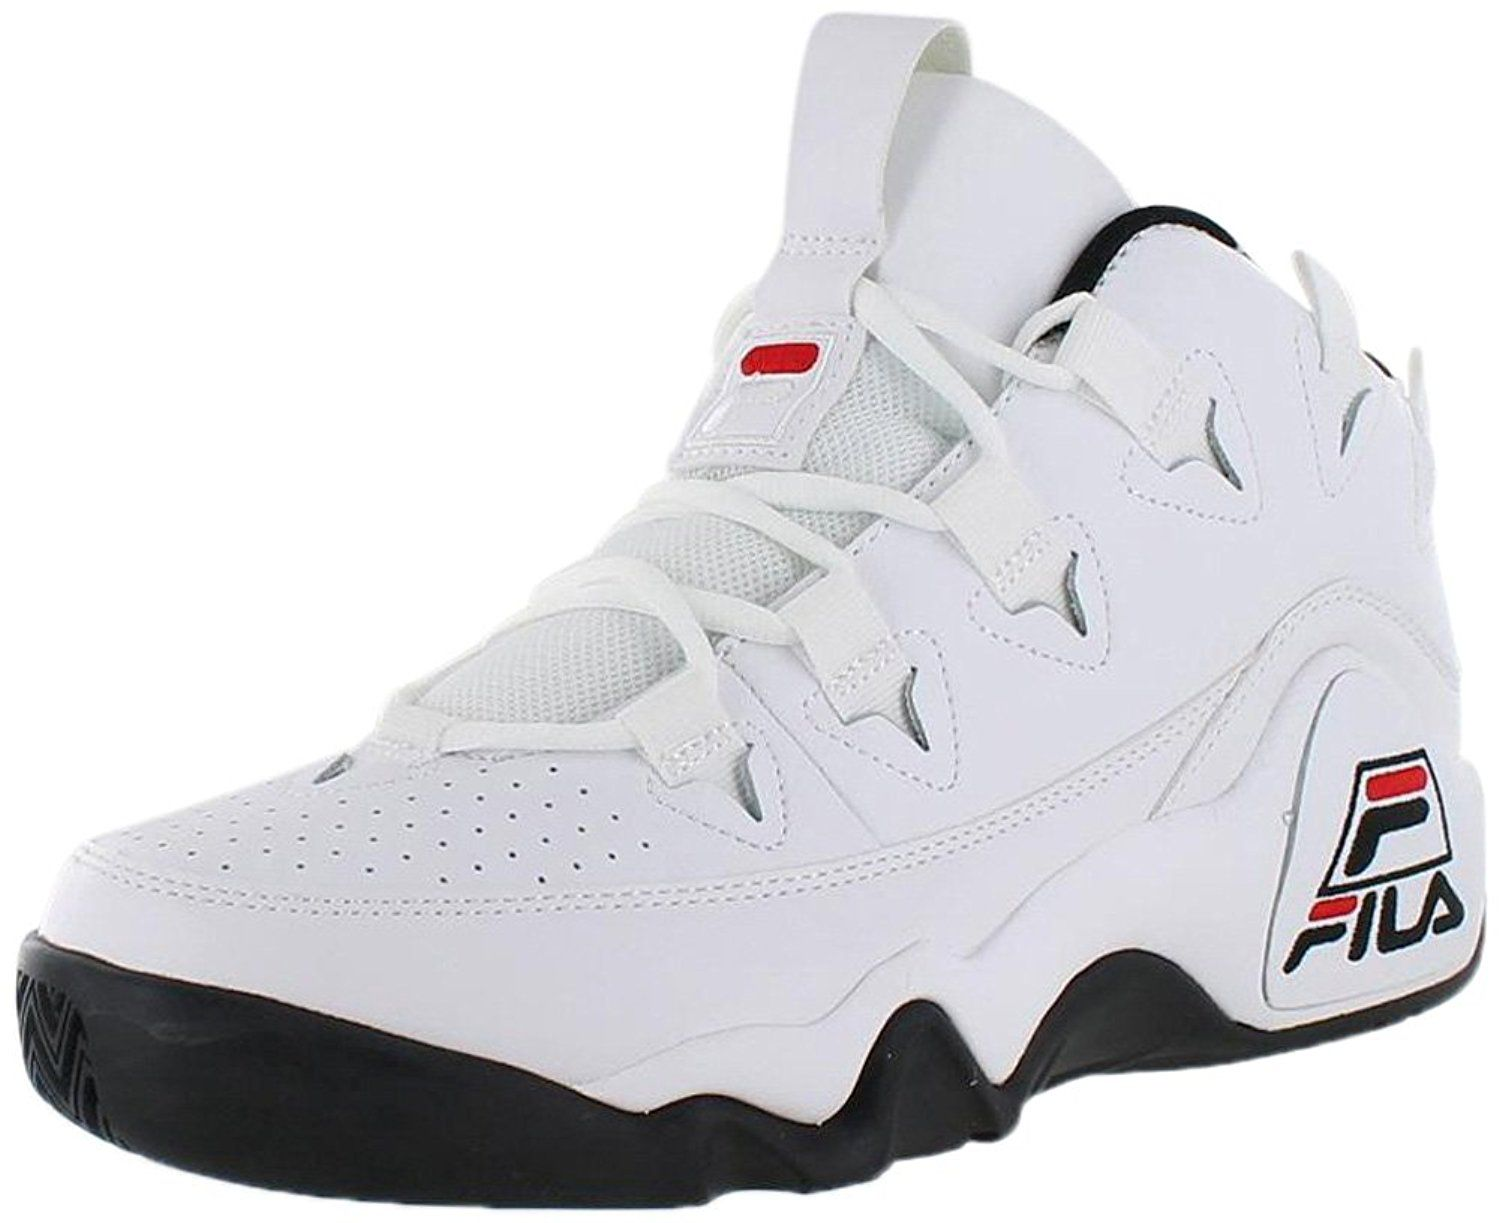 Fila The 95 Grant Hill menns retro basketball  Fila The 95 Grant Hill Men's Retro Basketball